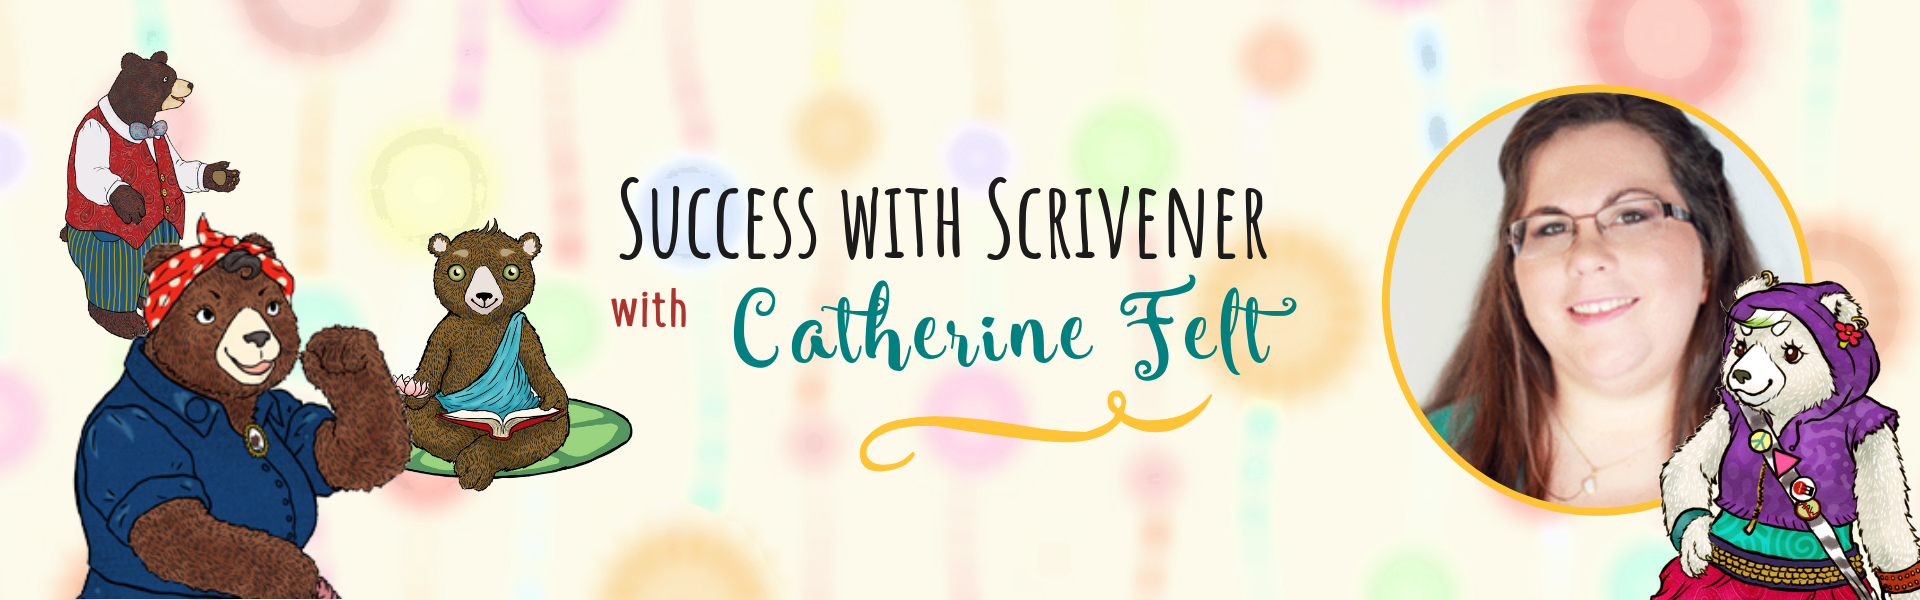 Success with Scrivener with Cathrine Felt at the Children's Book Academy